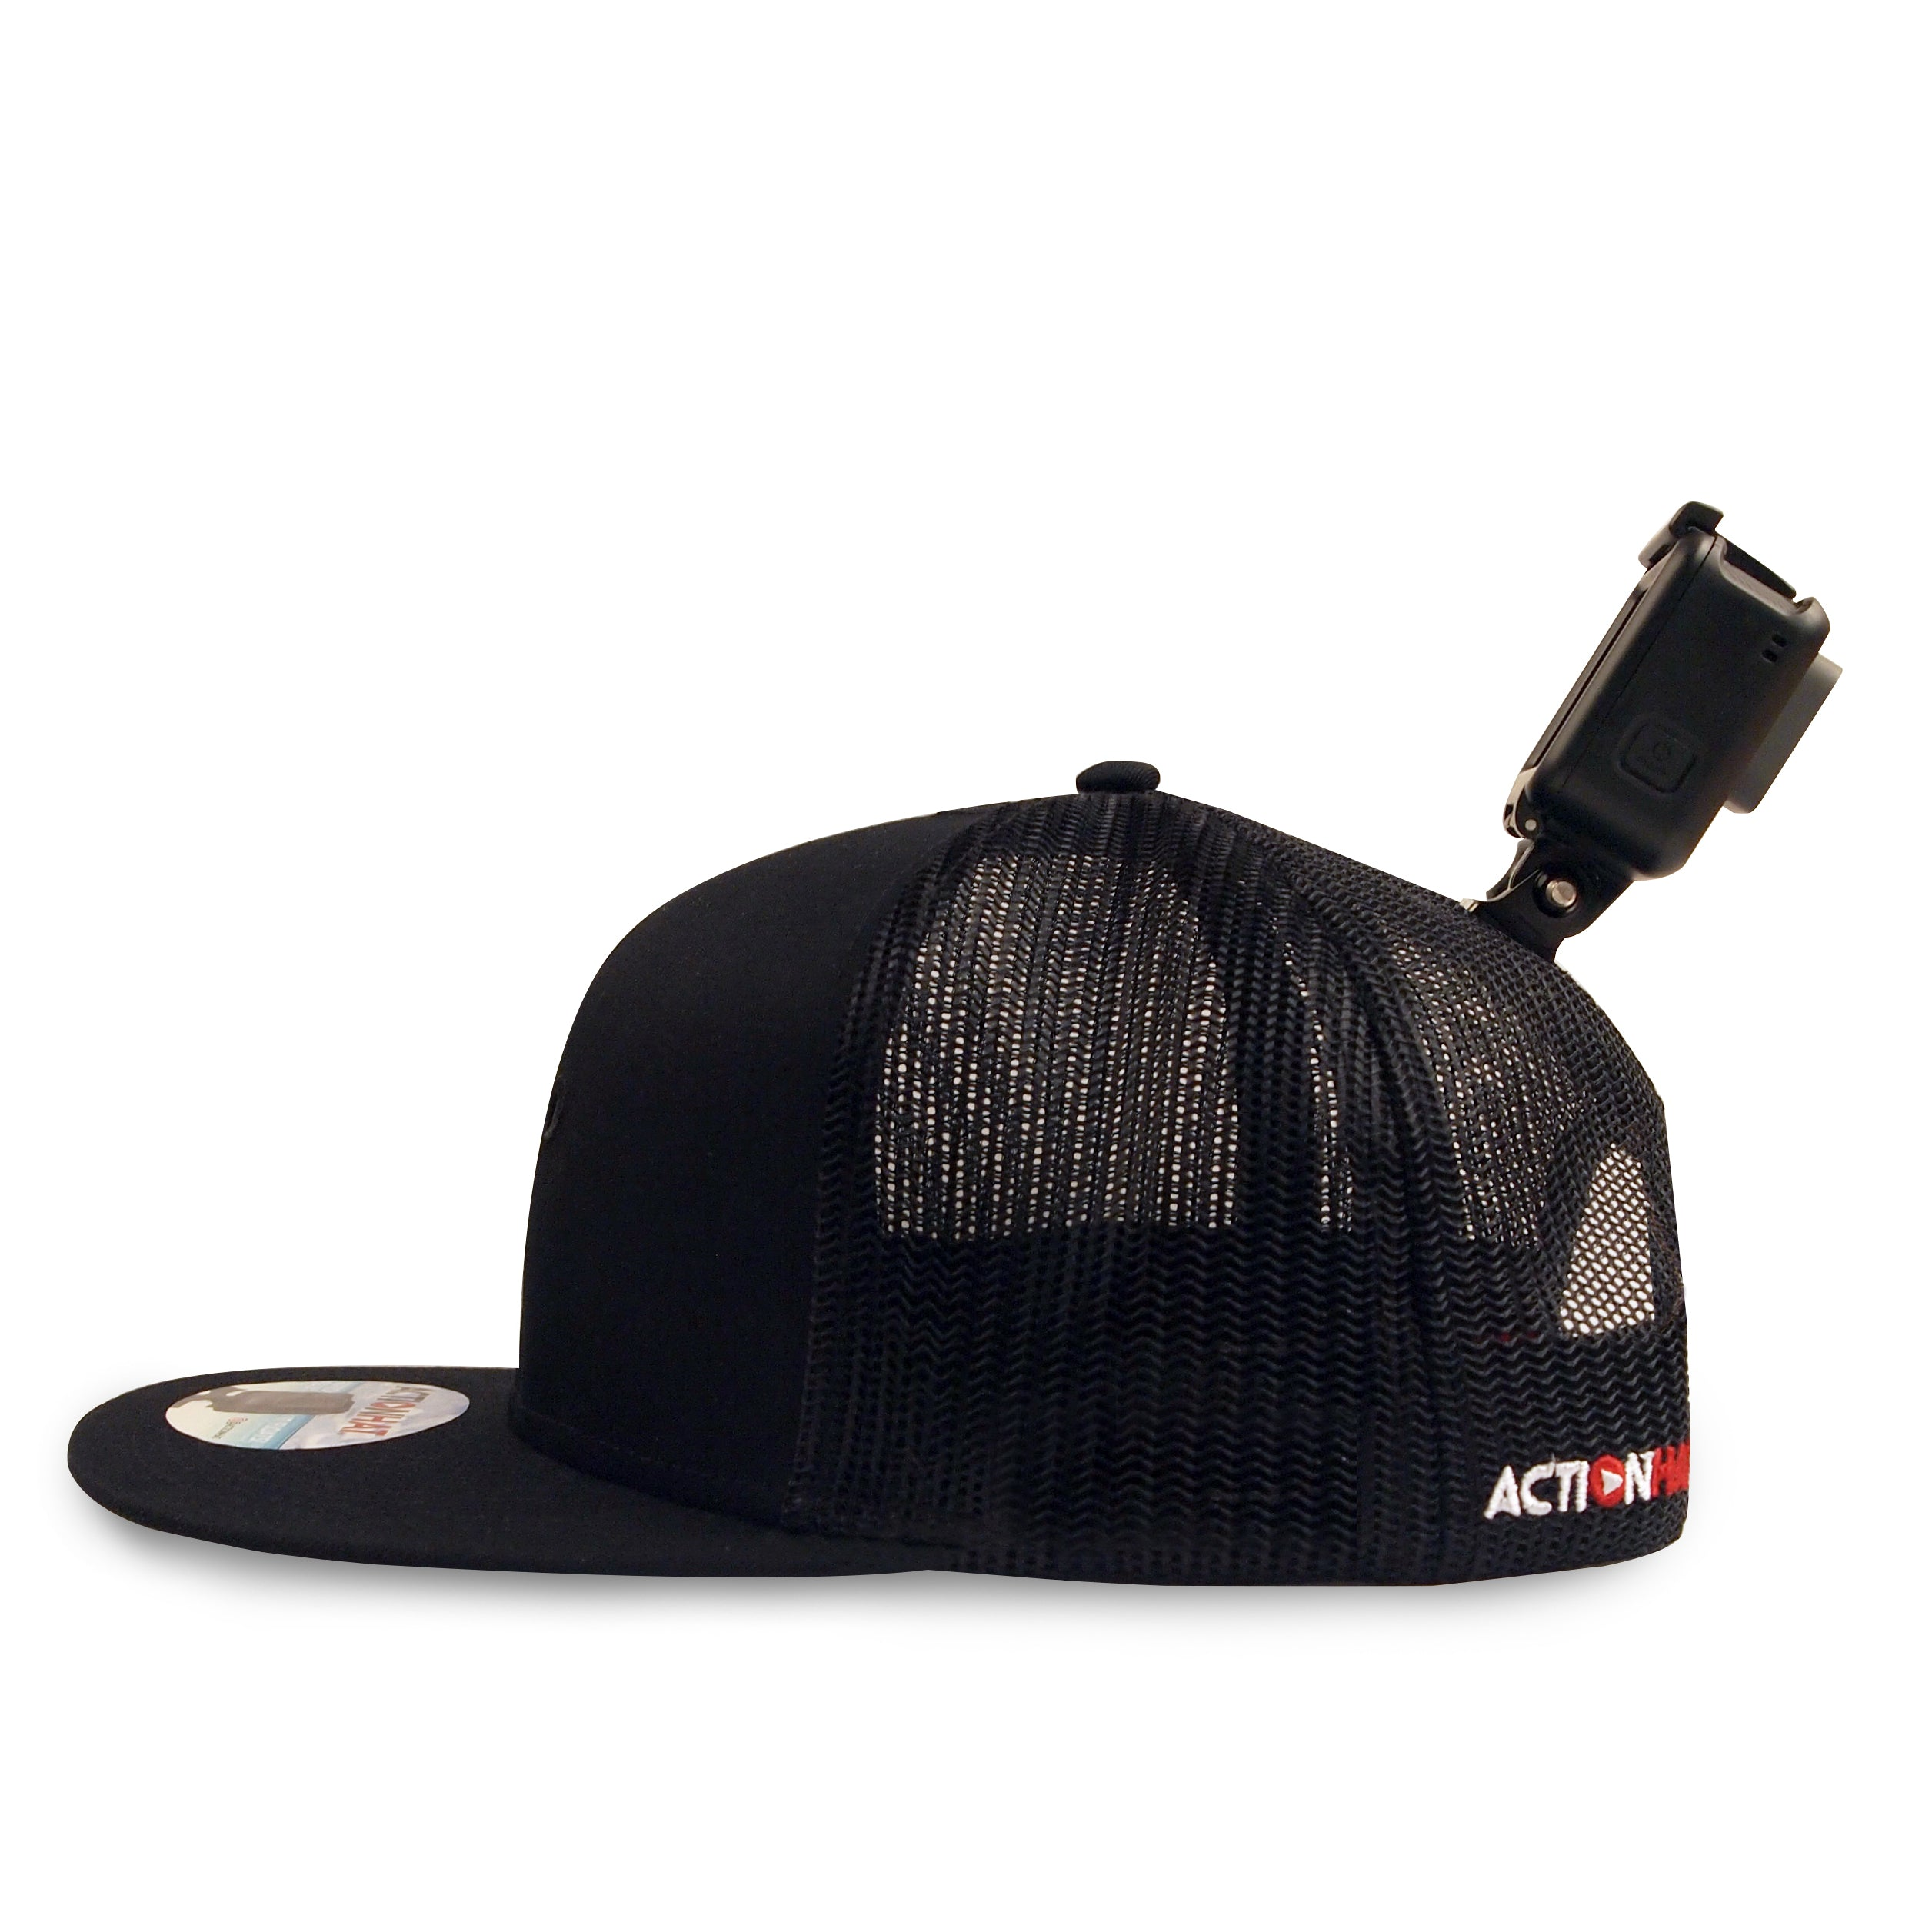 ActionHat Mesh: Gray Curve Bill - Hat Mount for GoPro